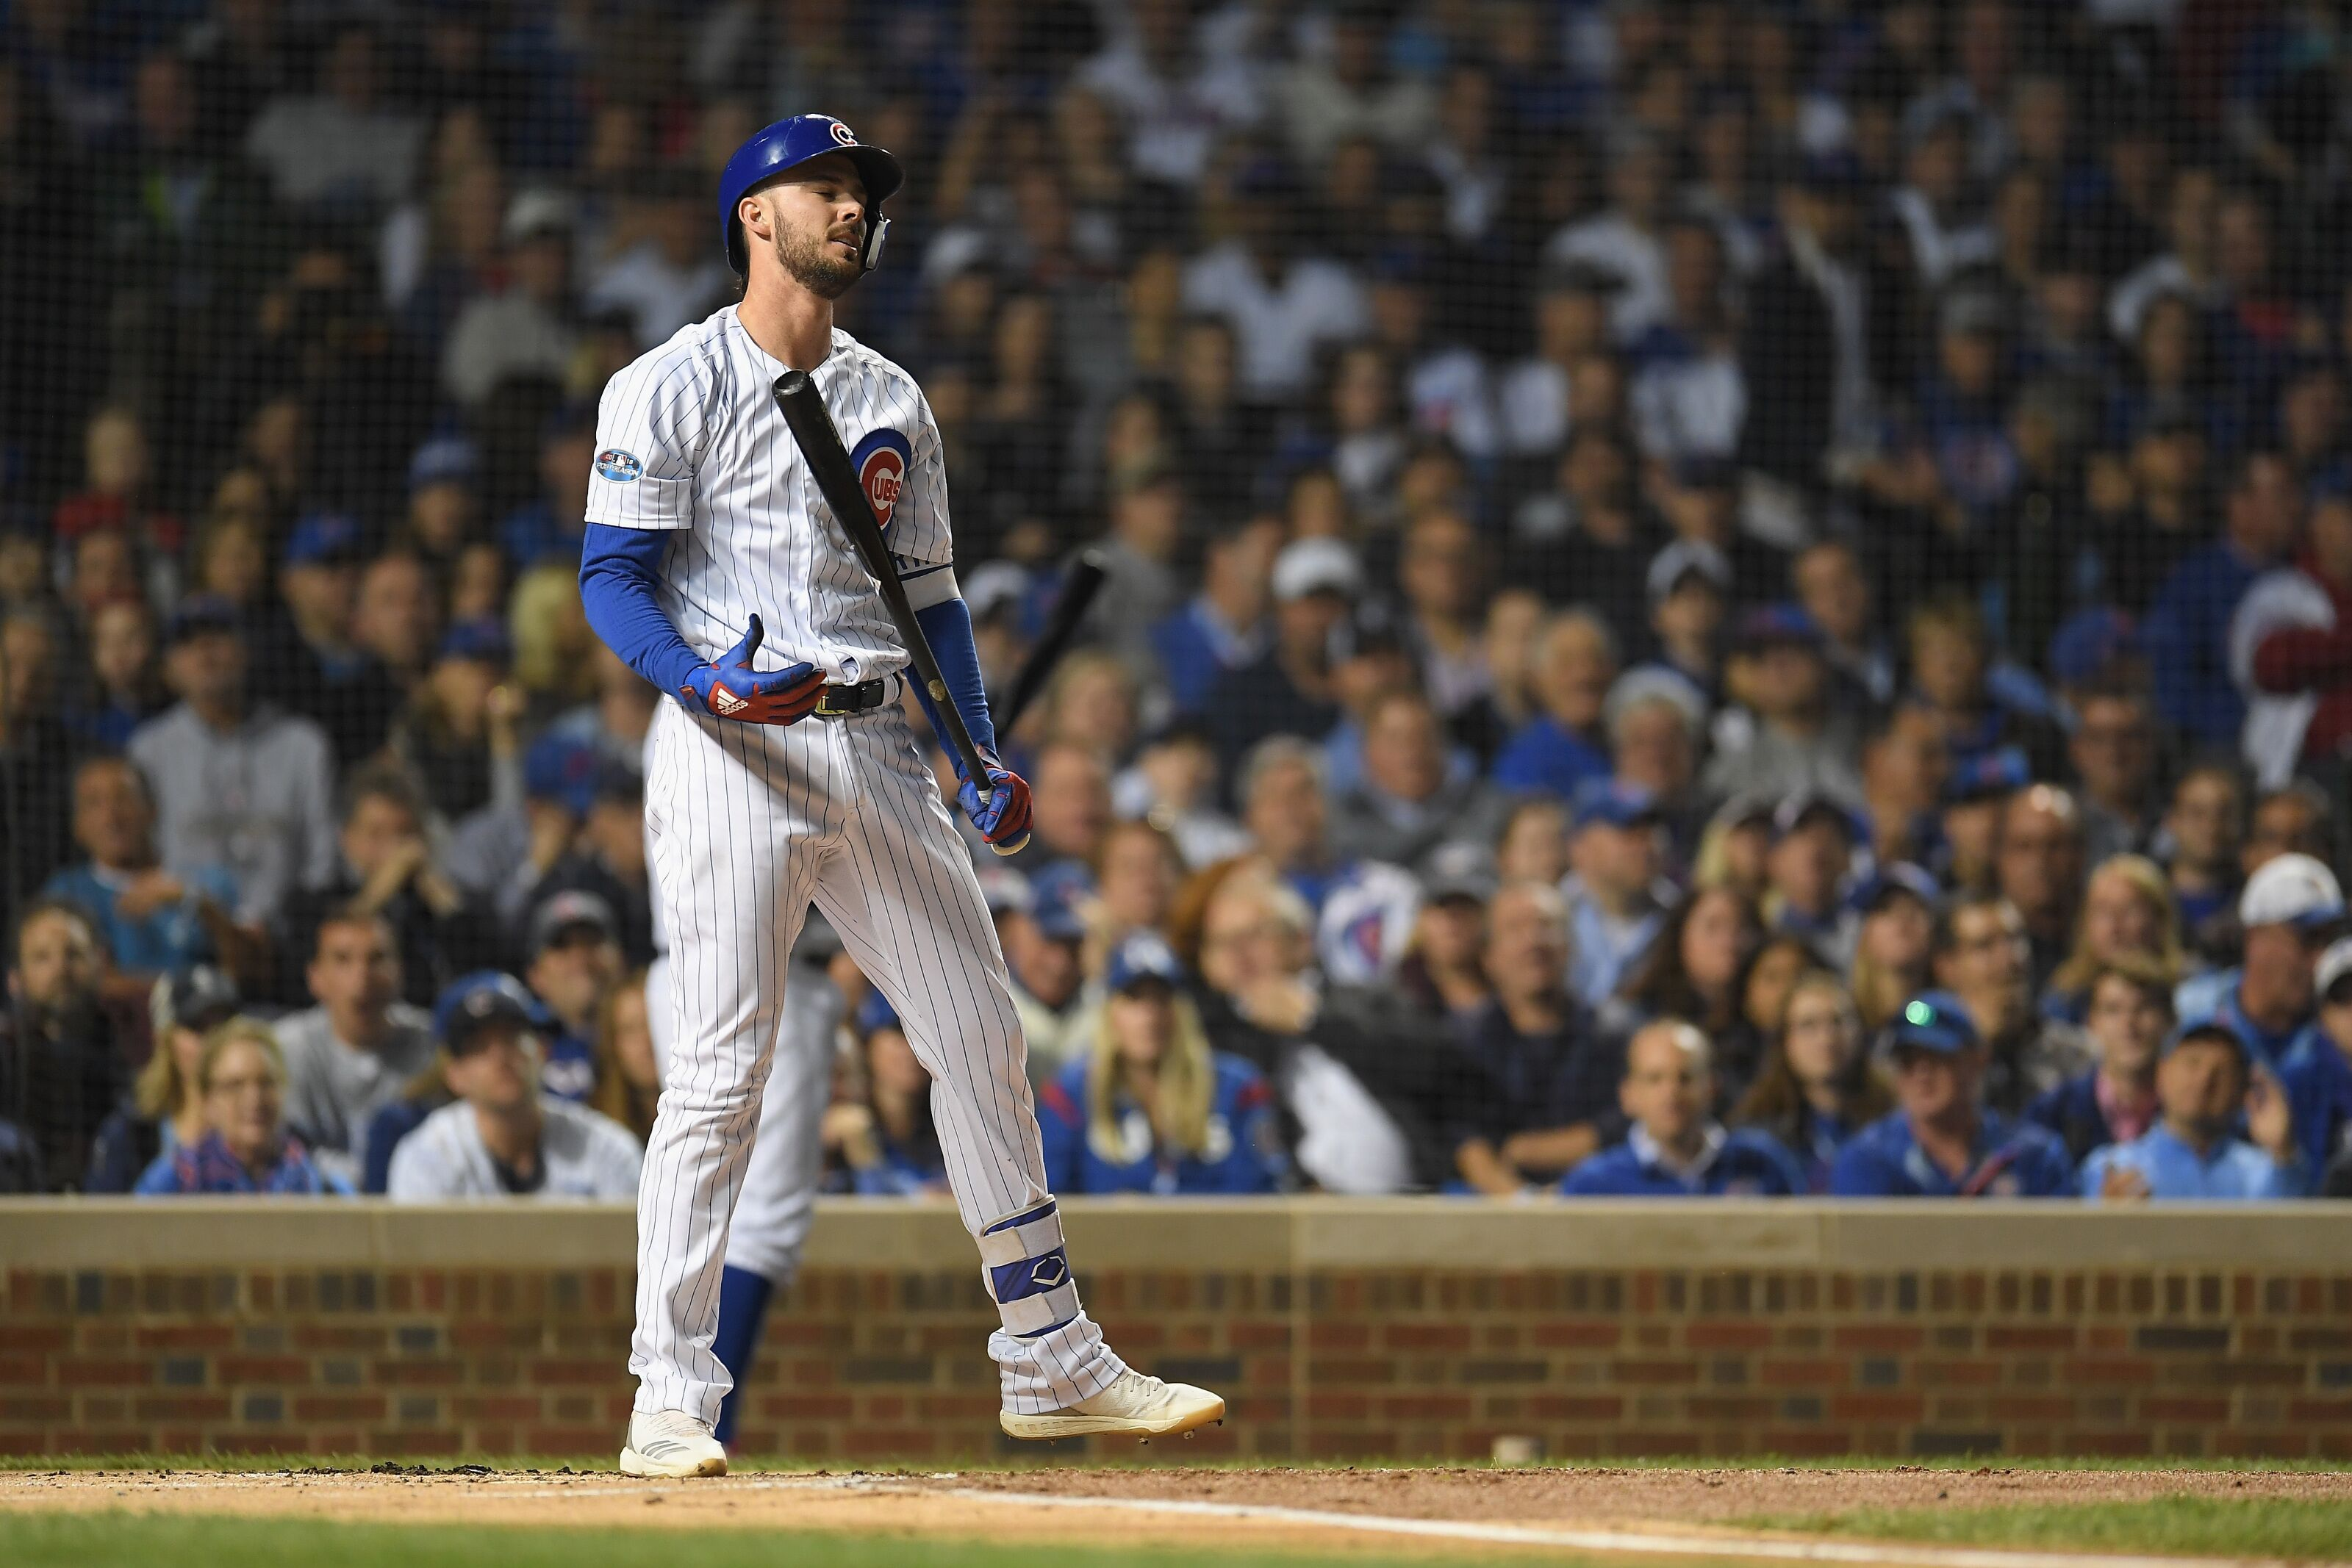 Chicago Cubs Rumors: Why trading Kris Bryant would be foolish